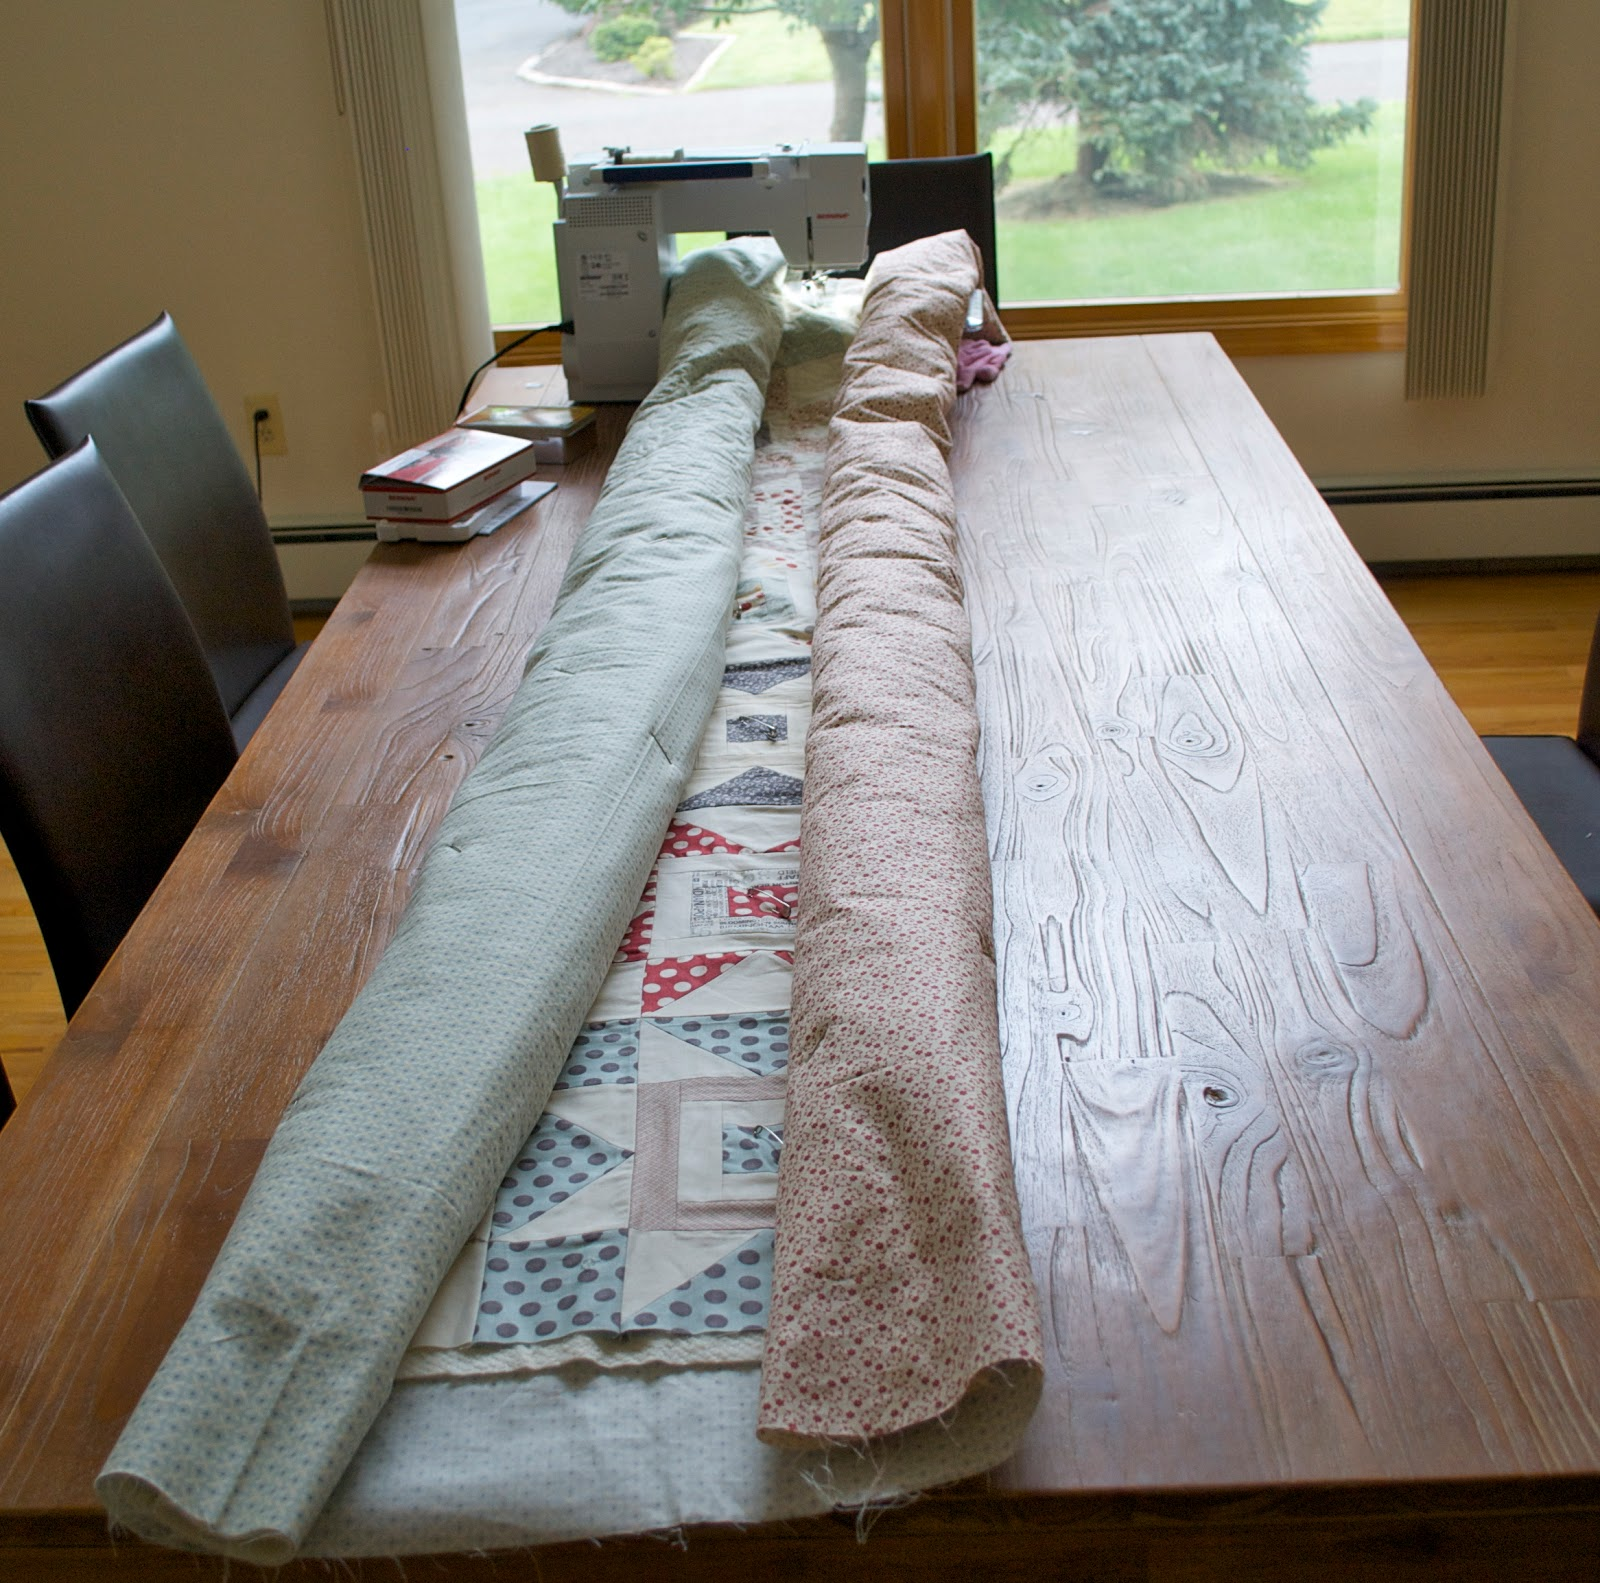 Let's begin sewing...: Quilting Large Quilts : machine quilting a large quilt - Adamdwight.com